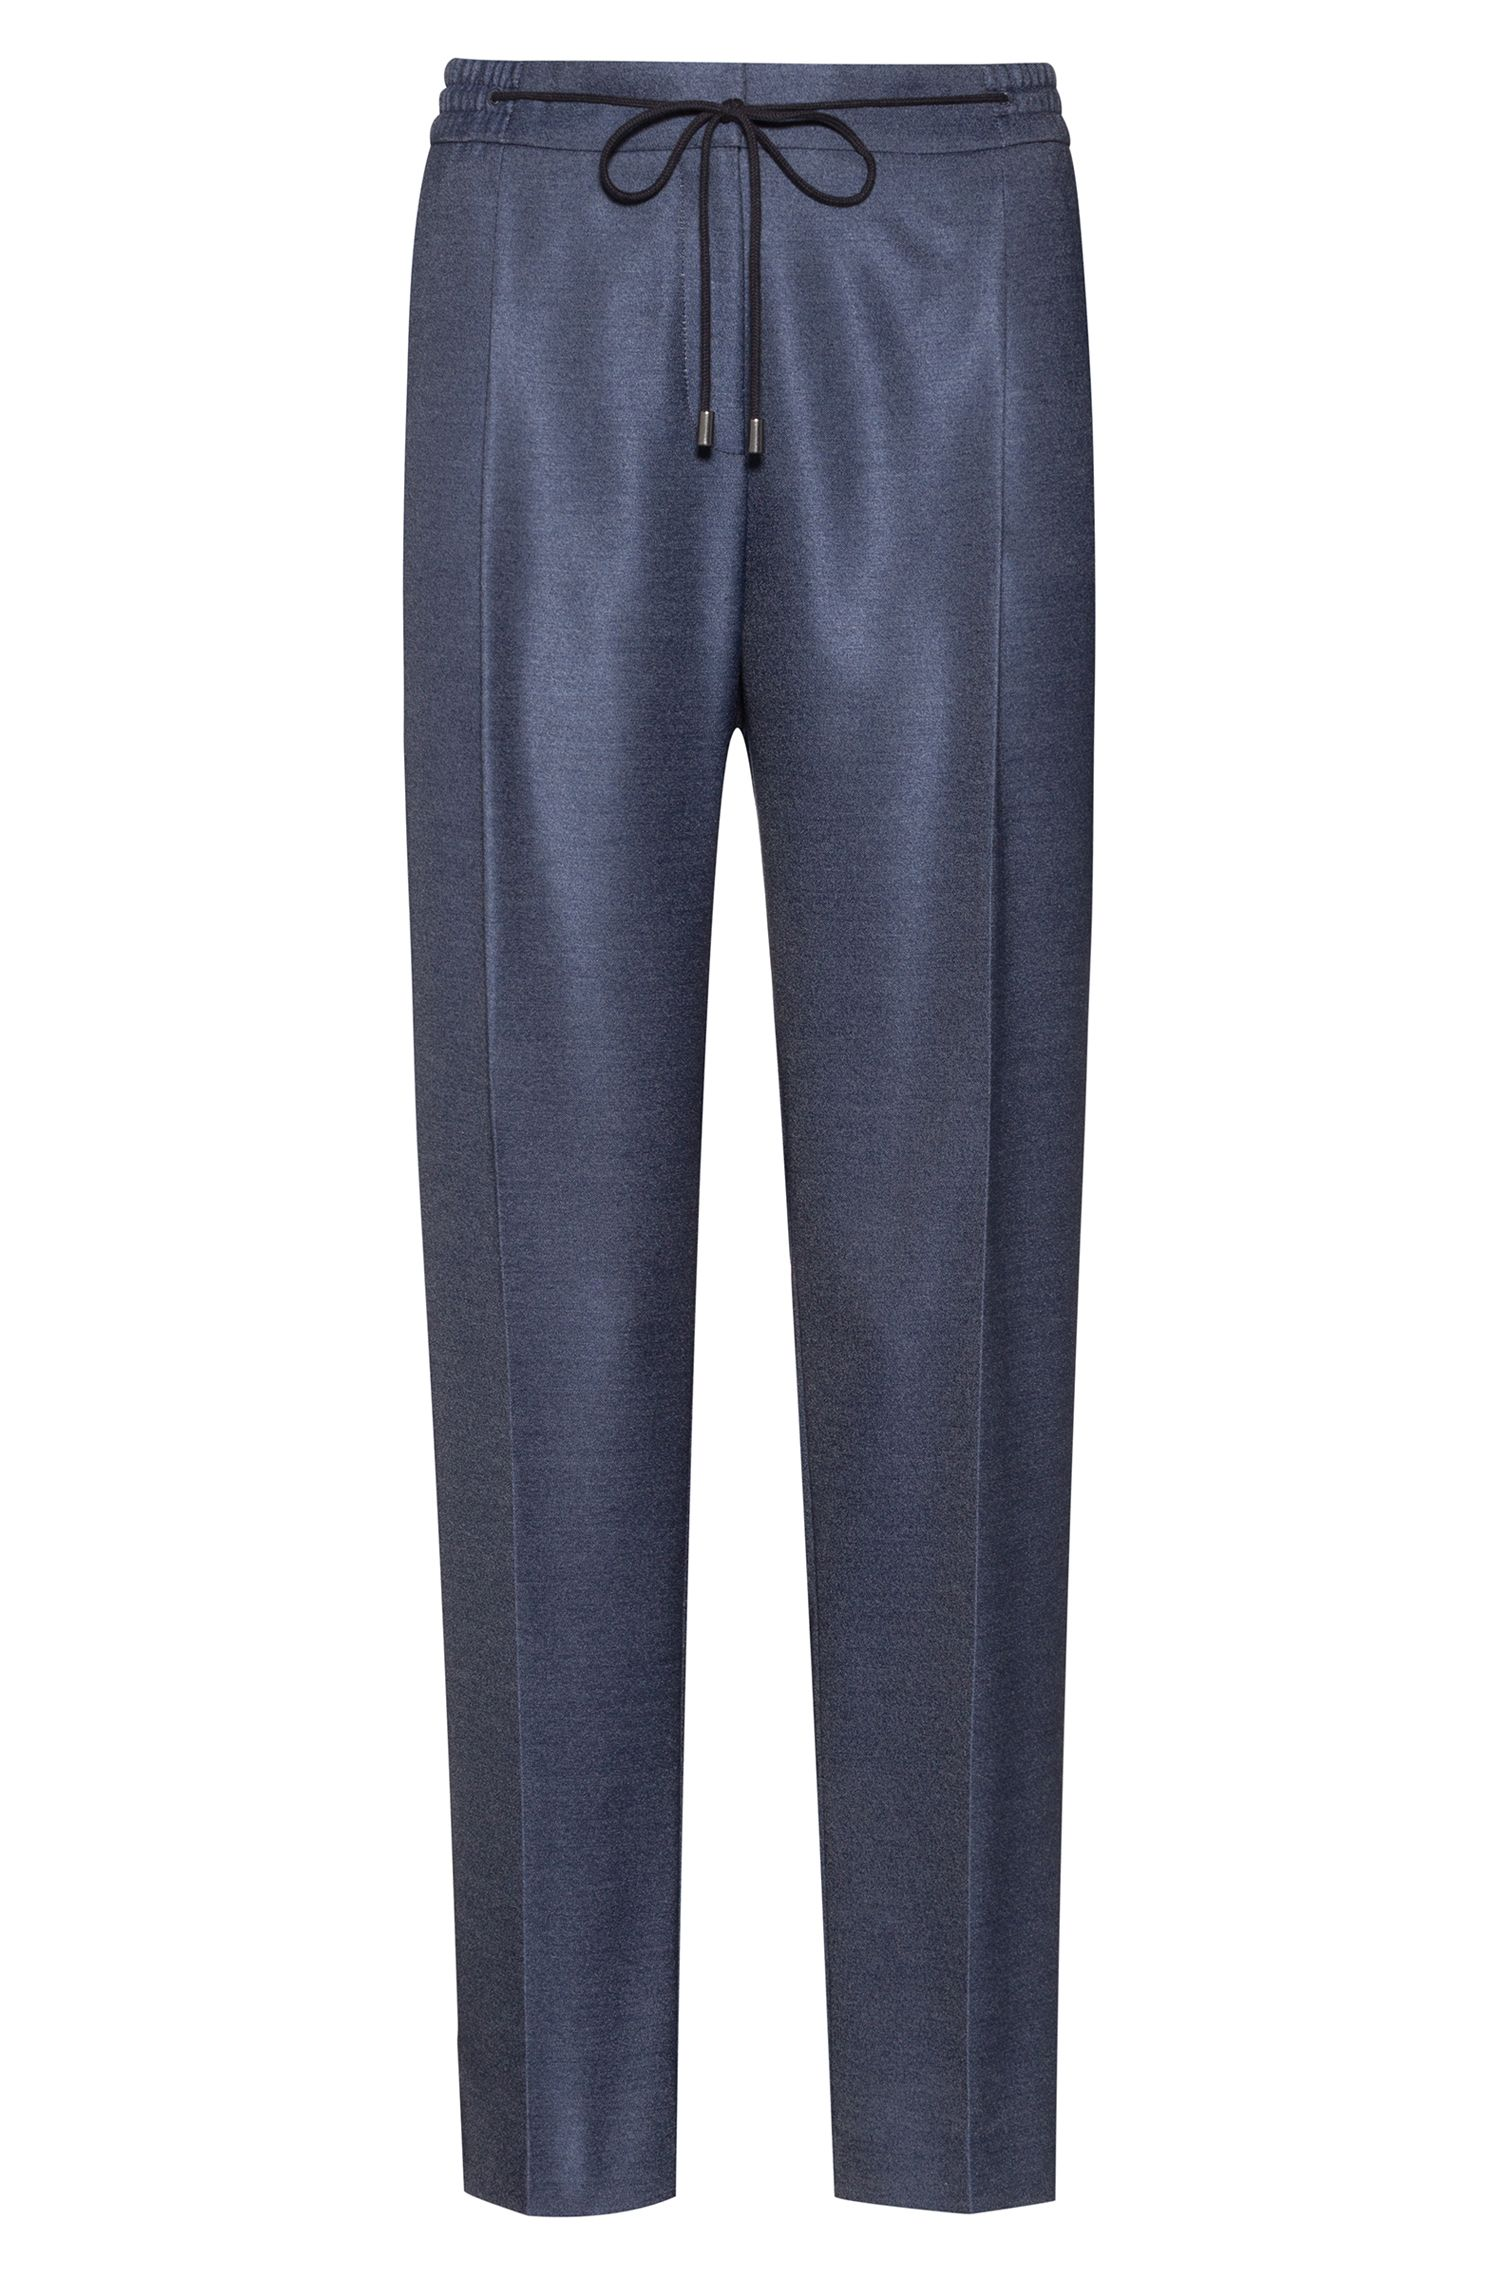 Relaxed-fit trousers in stretch fabric with drawstring waist